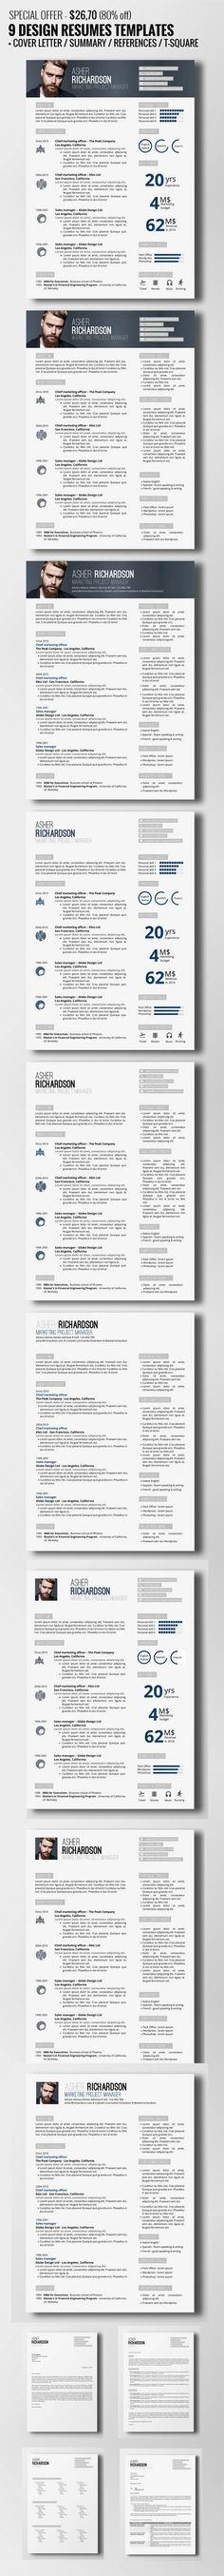 435 best Resume images on Pinterest Resume design, Design resume - make up artists resume